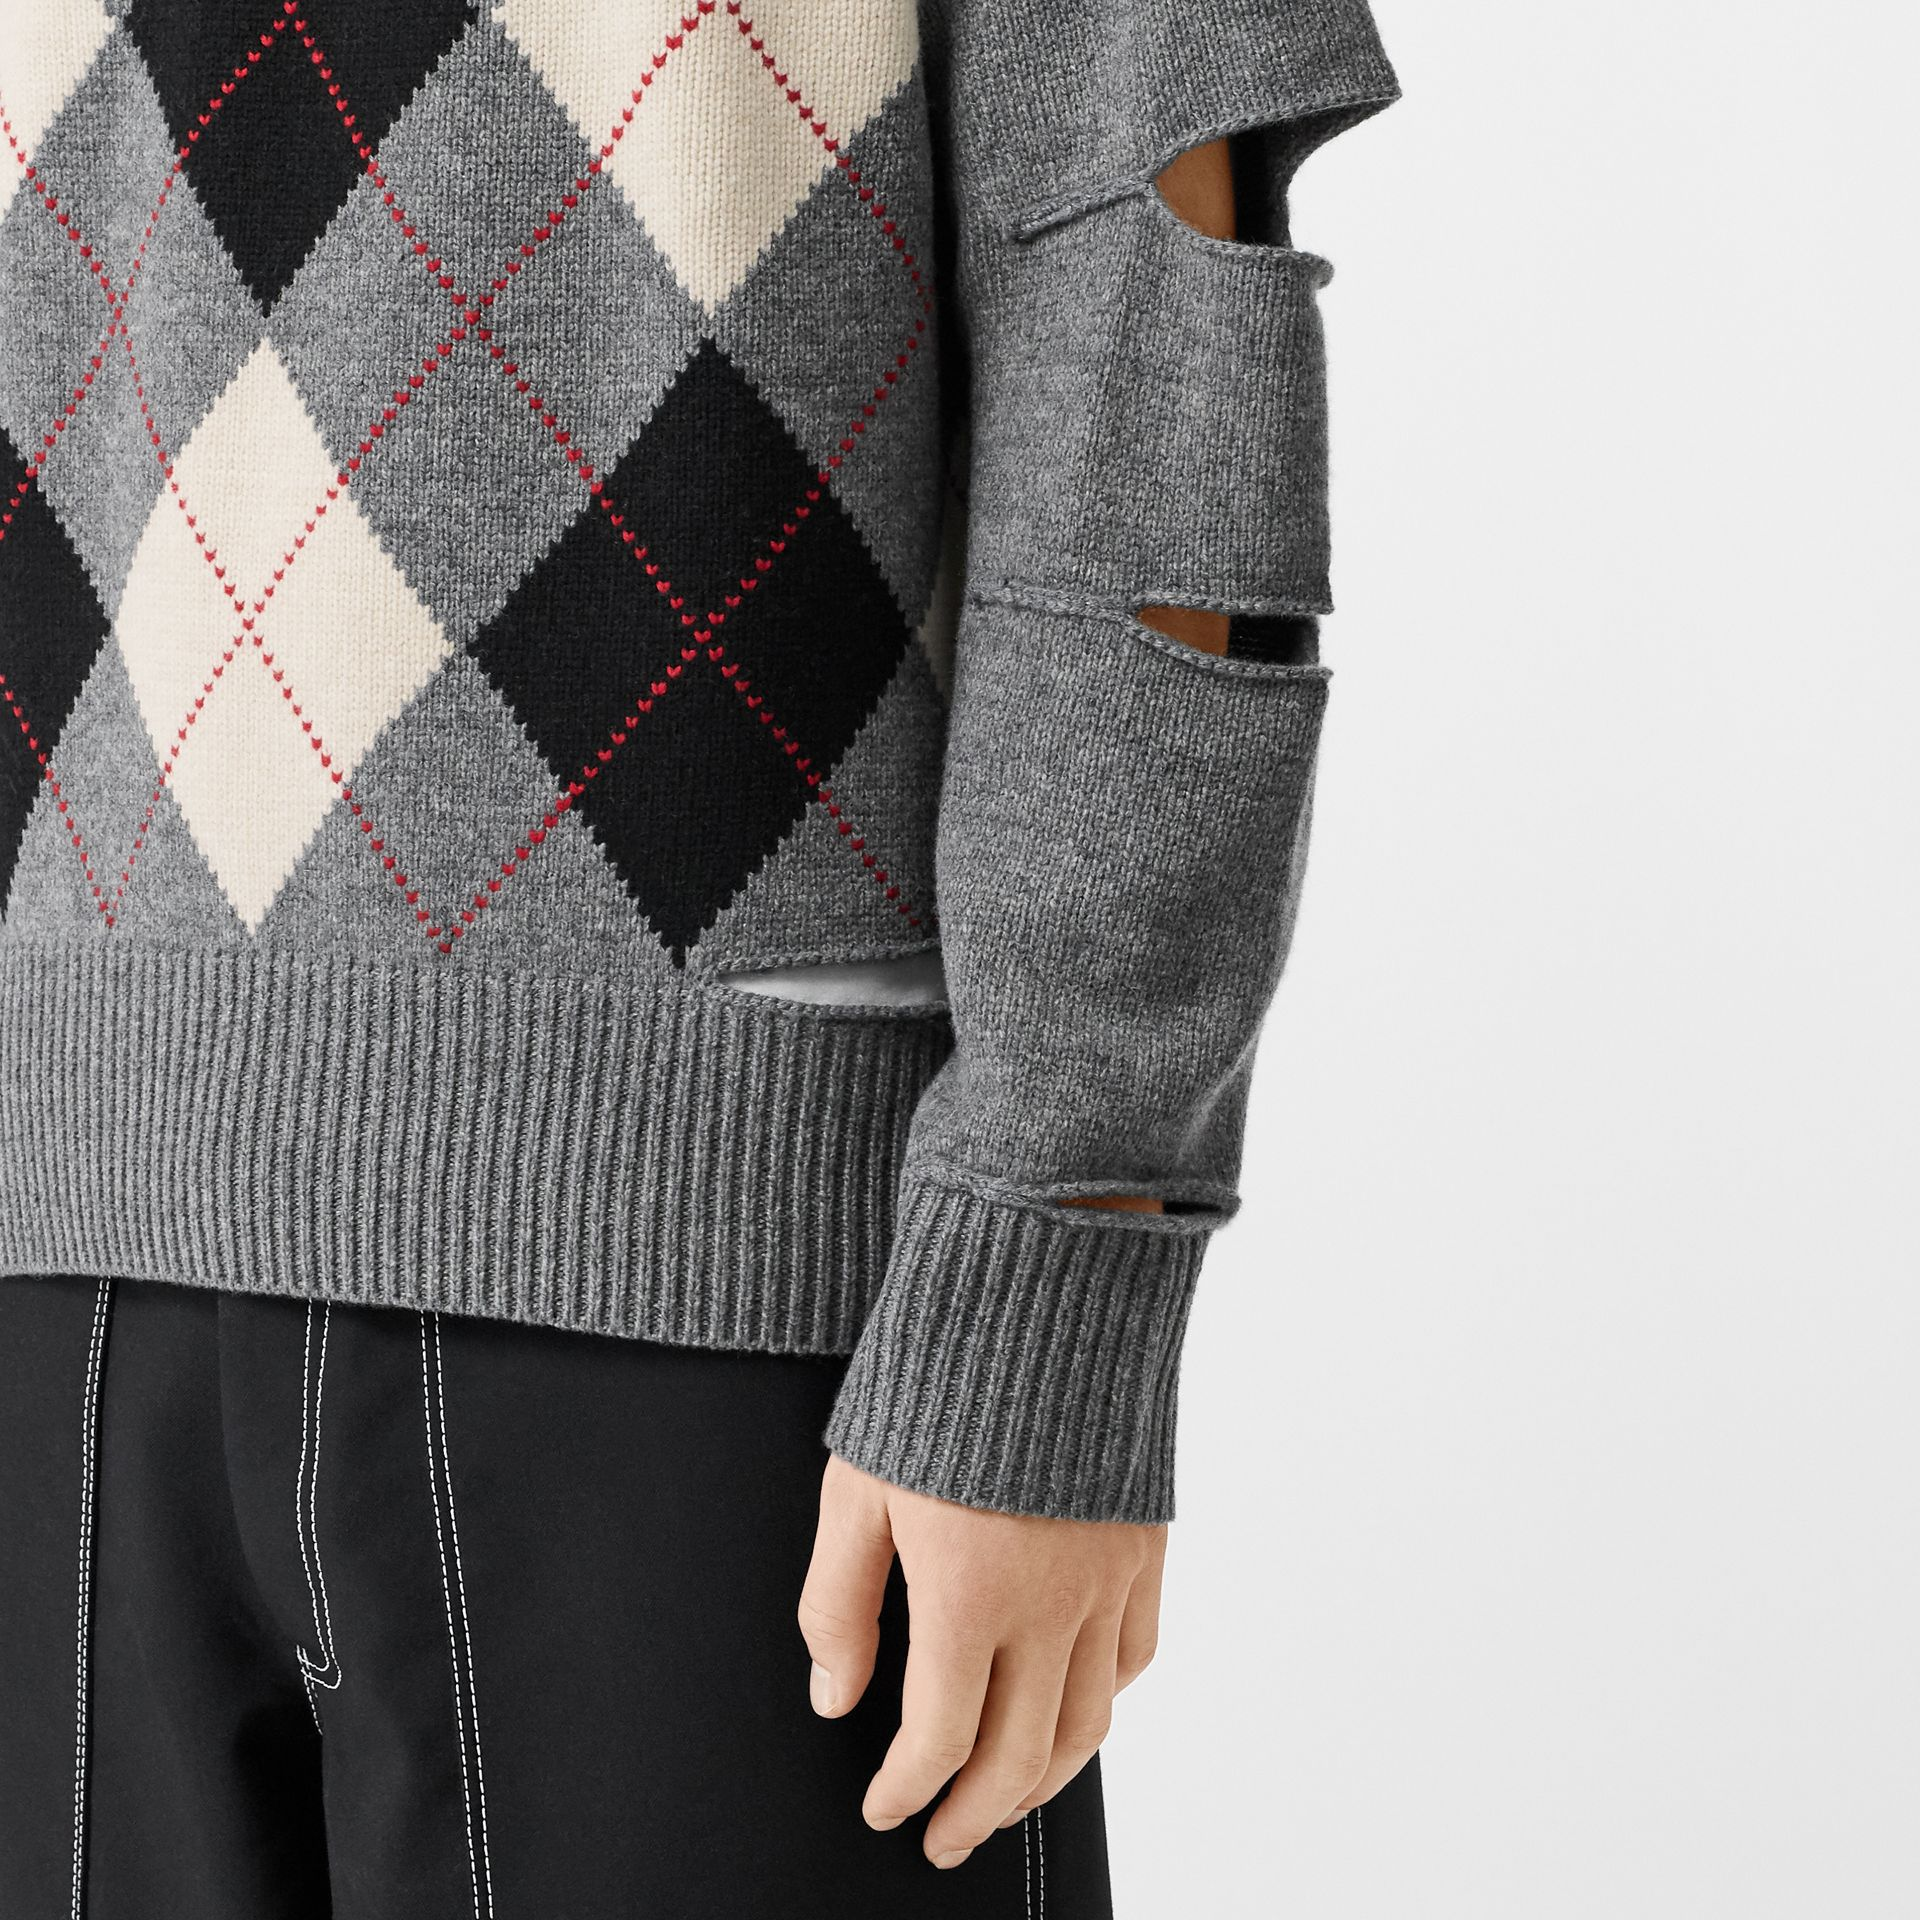 Cut-out Detail Merino Wool Cashmere Sweater in Mid Greymelange - Men | Burberry - gallery image 1